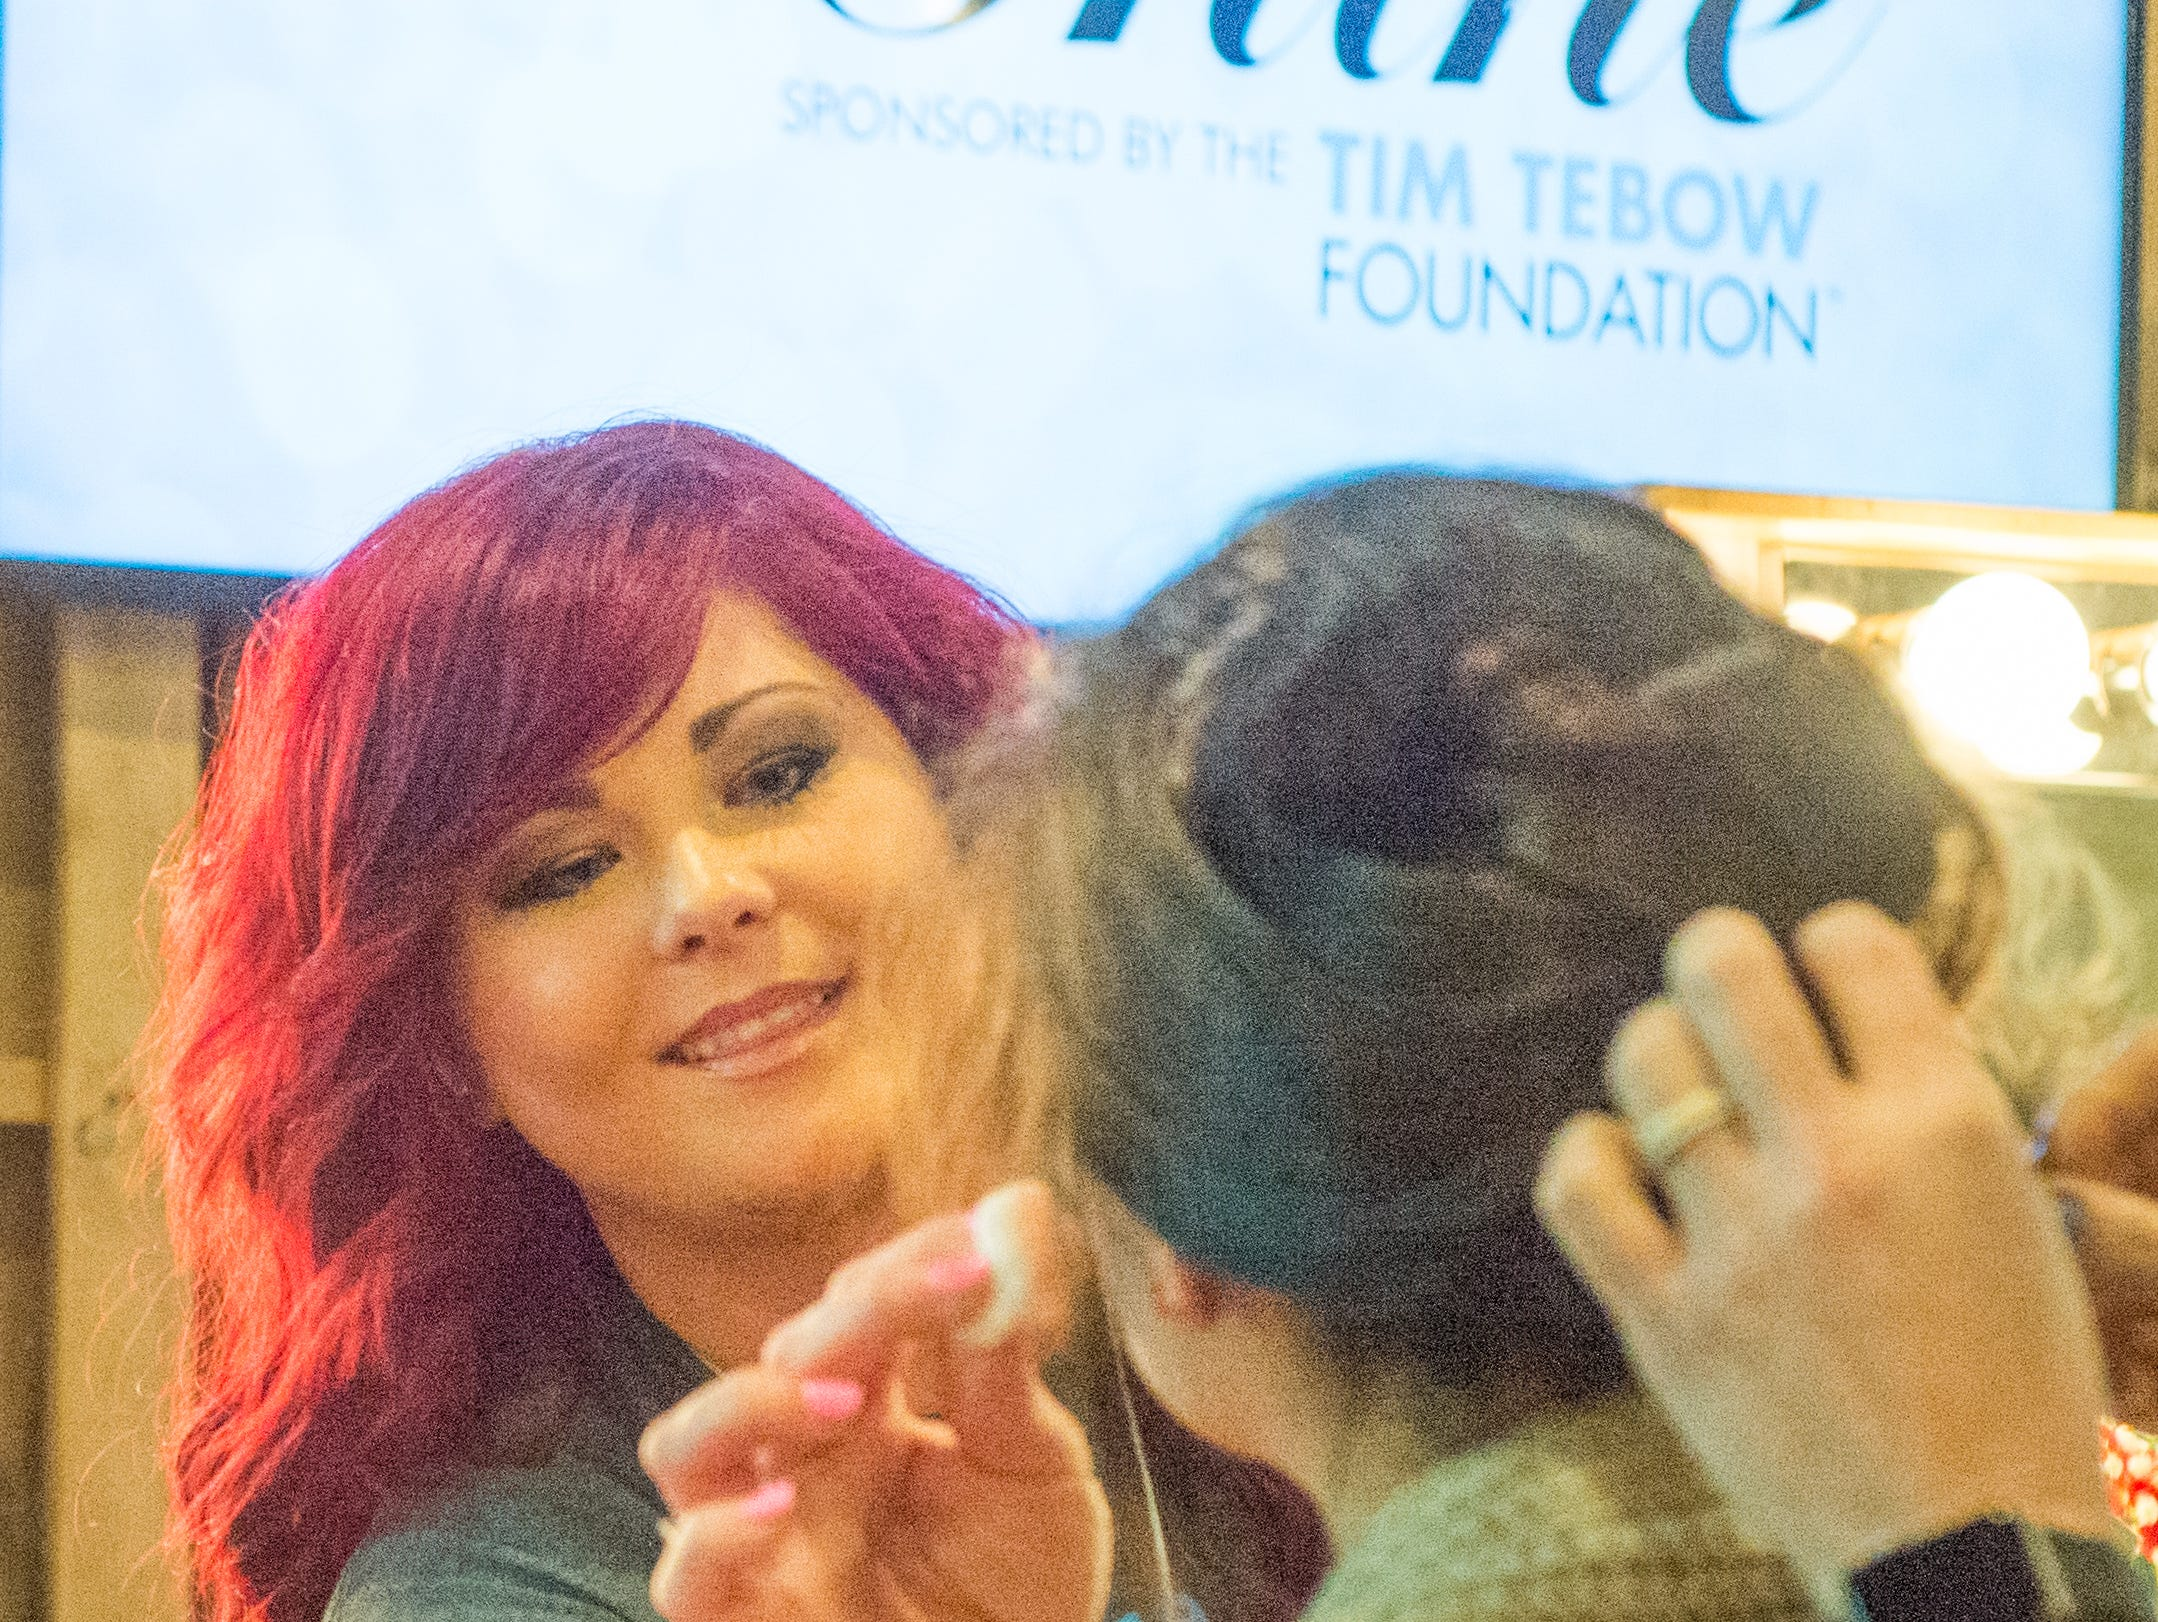 Tabitha Thompson helps style honored guests during the Night to Shine event held at NorthField Church in Gallatin on Friday, Feb, 8. The Night to Shine is a prom night experience presented by Tim Tebow Foundation to celebrate God's love for people with special needs.